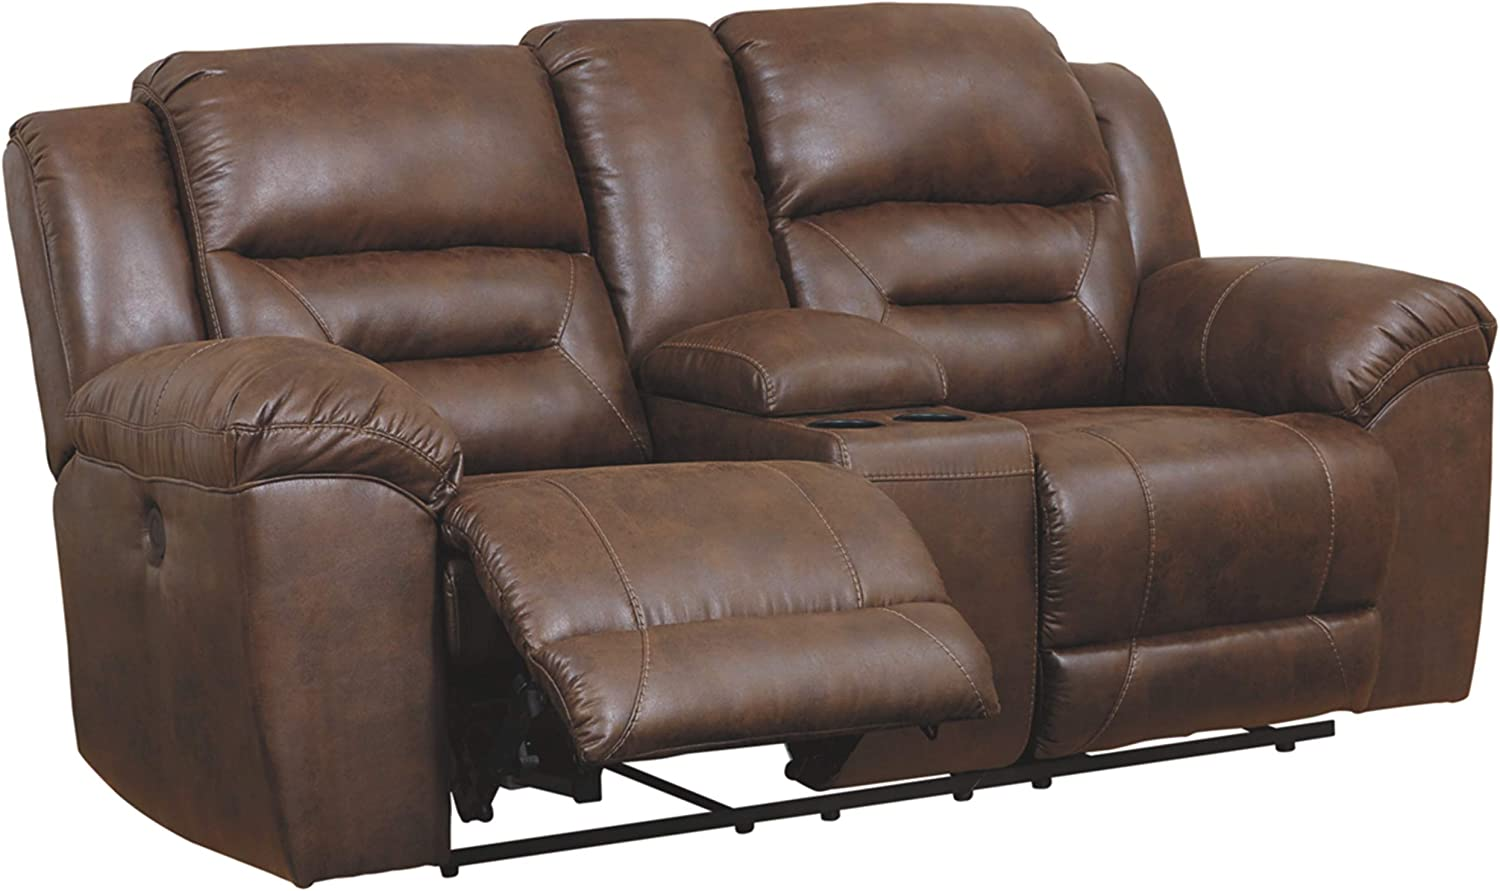 Signature Design by Ashley - Stoneland Faux Leather Double Reclining Power Loveseat with Console, Dark Brown